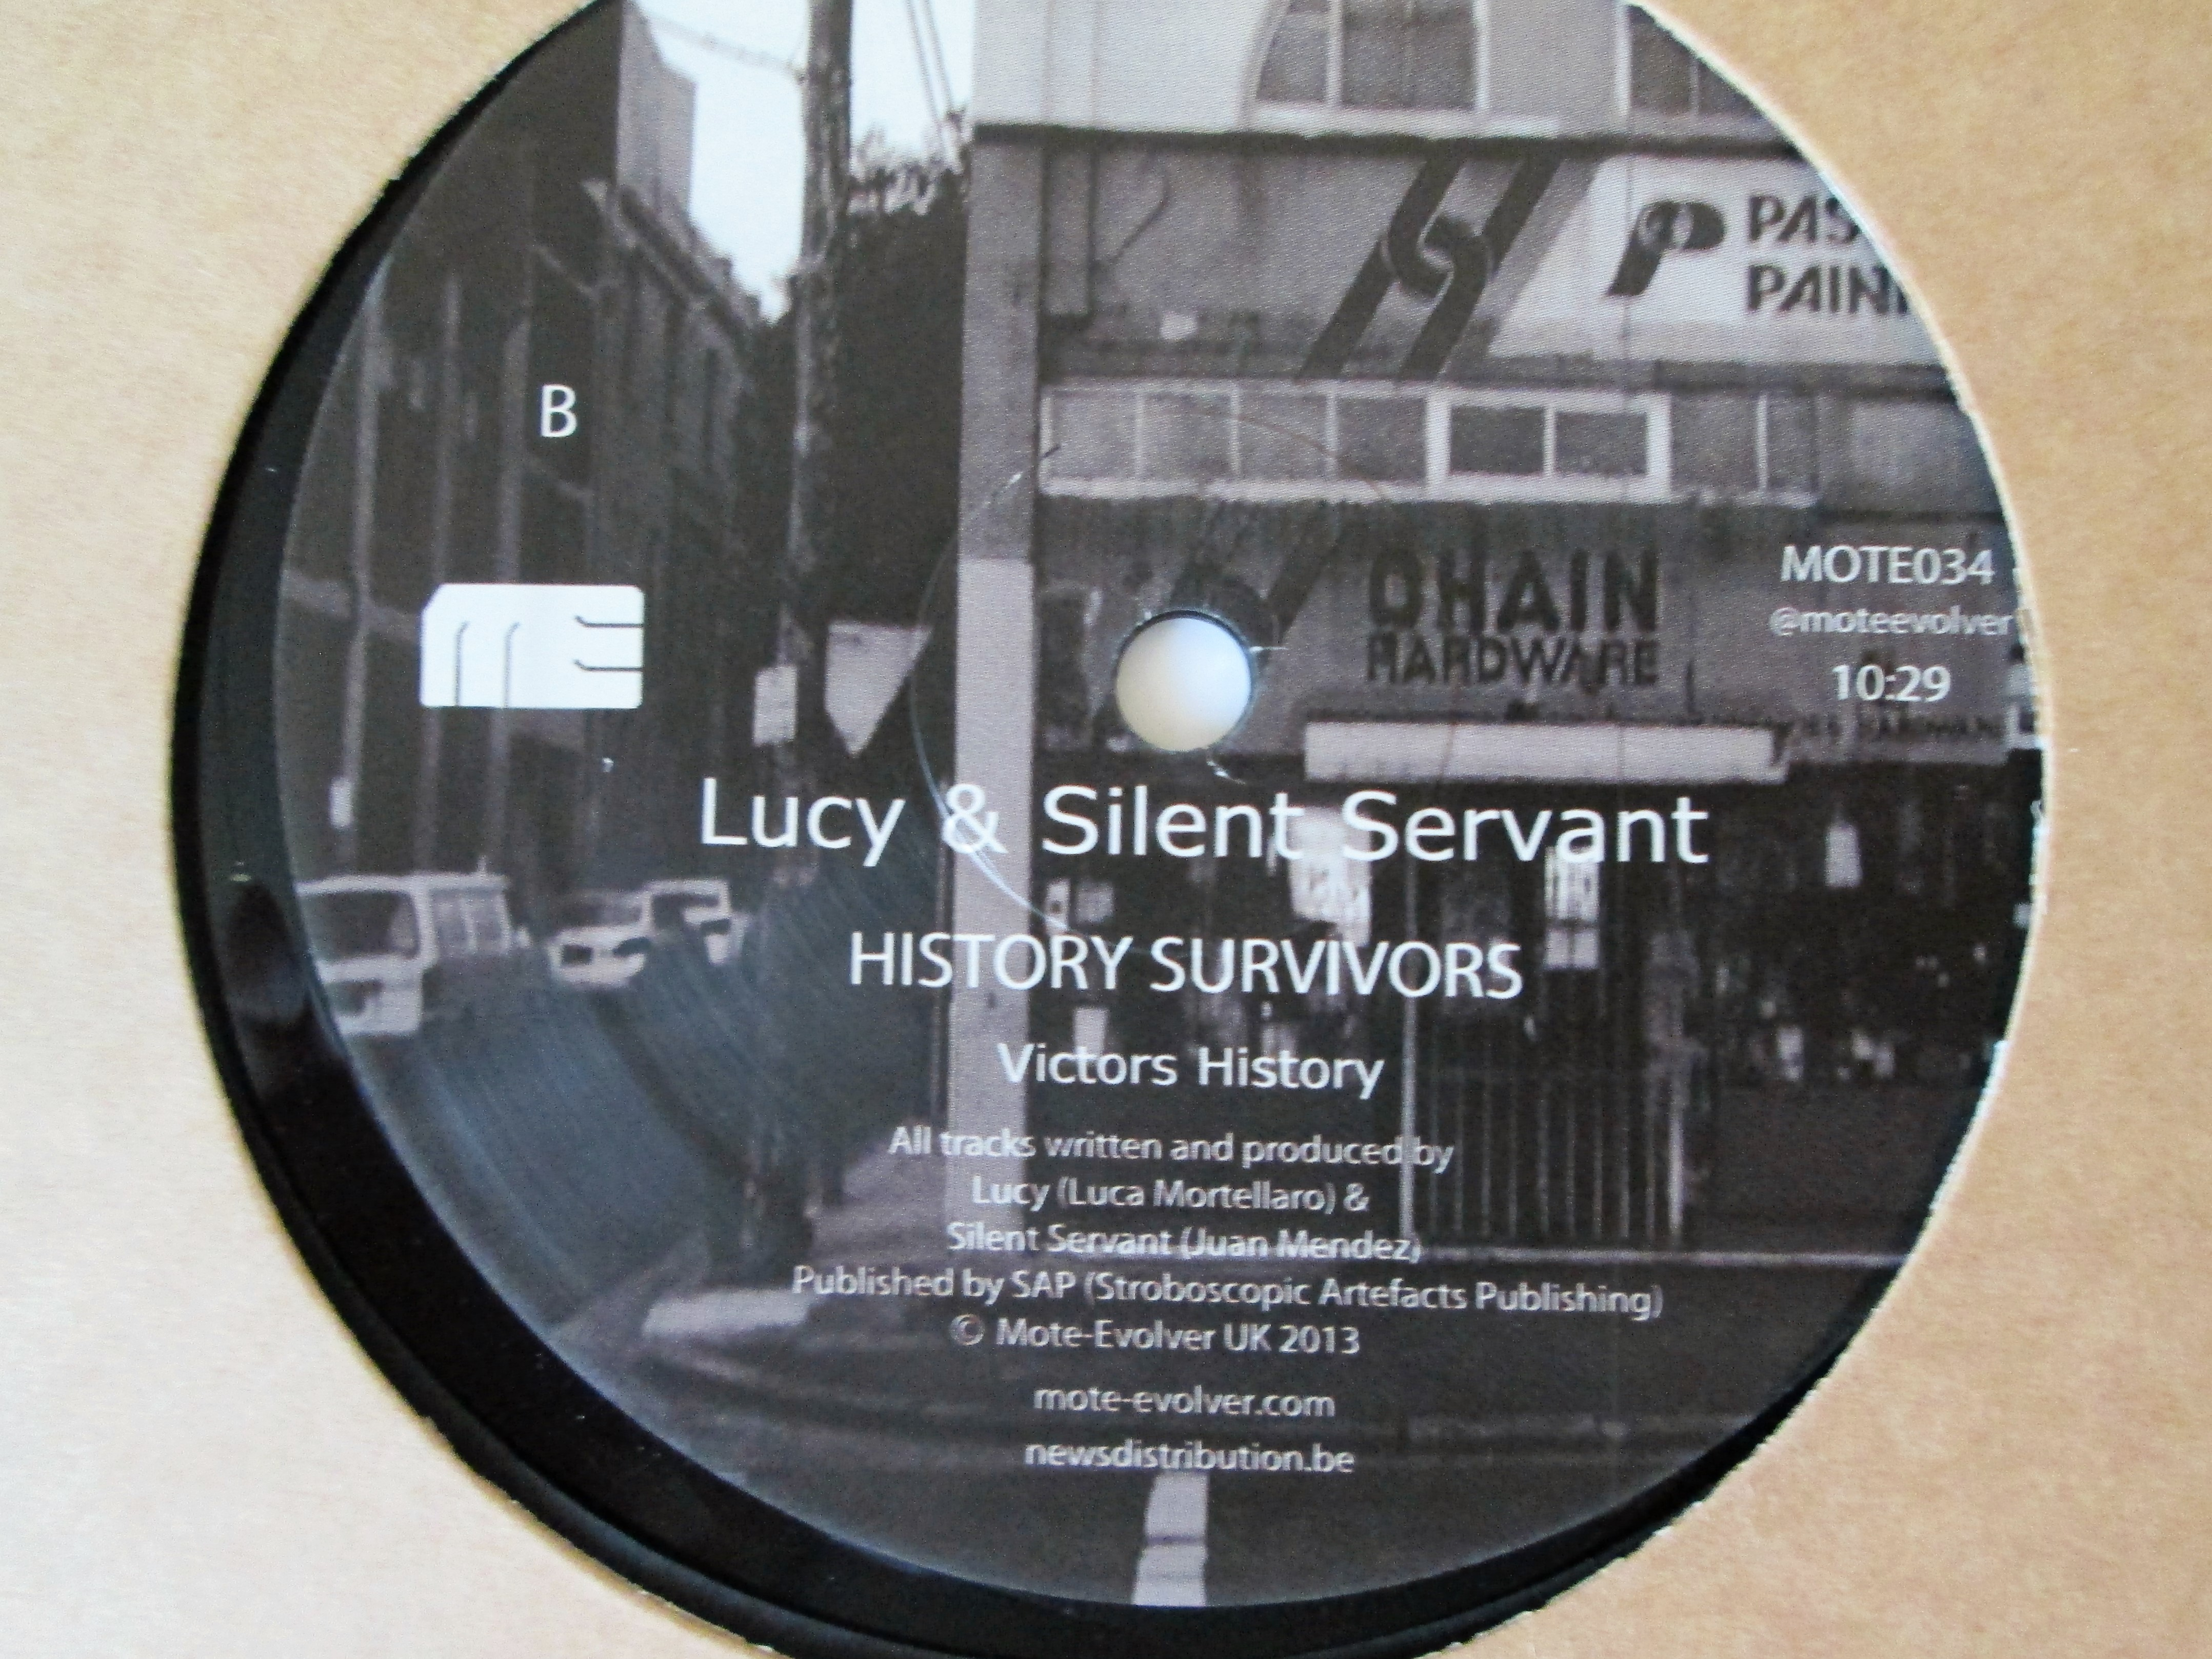 Buy vinyl artist% history survivors for sale